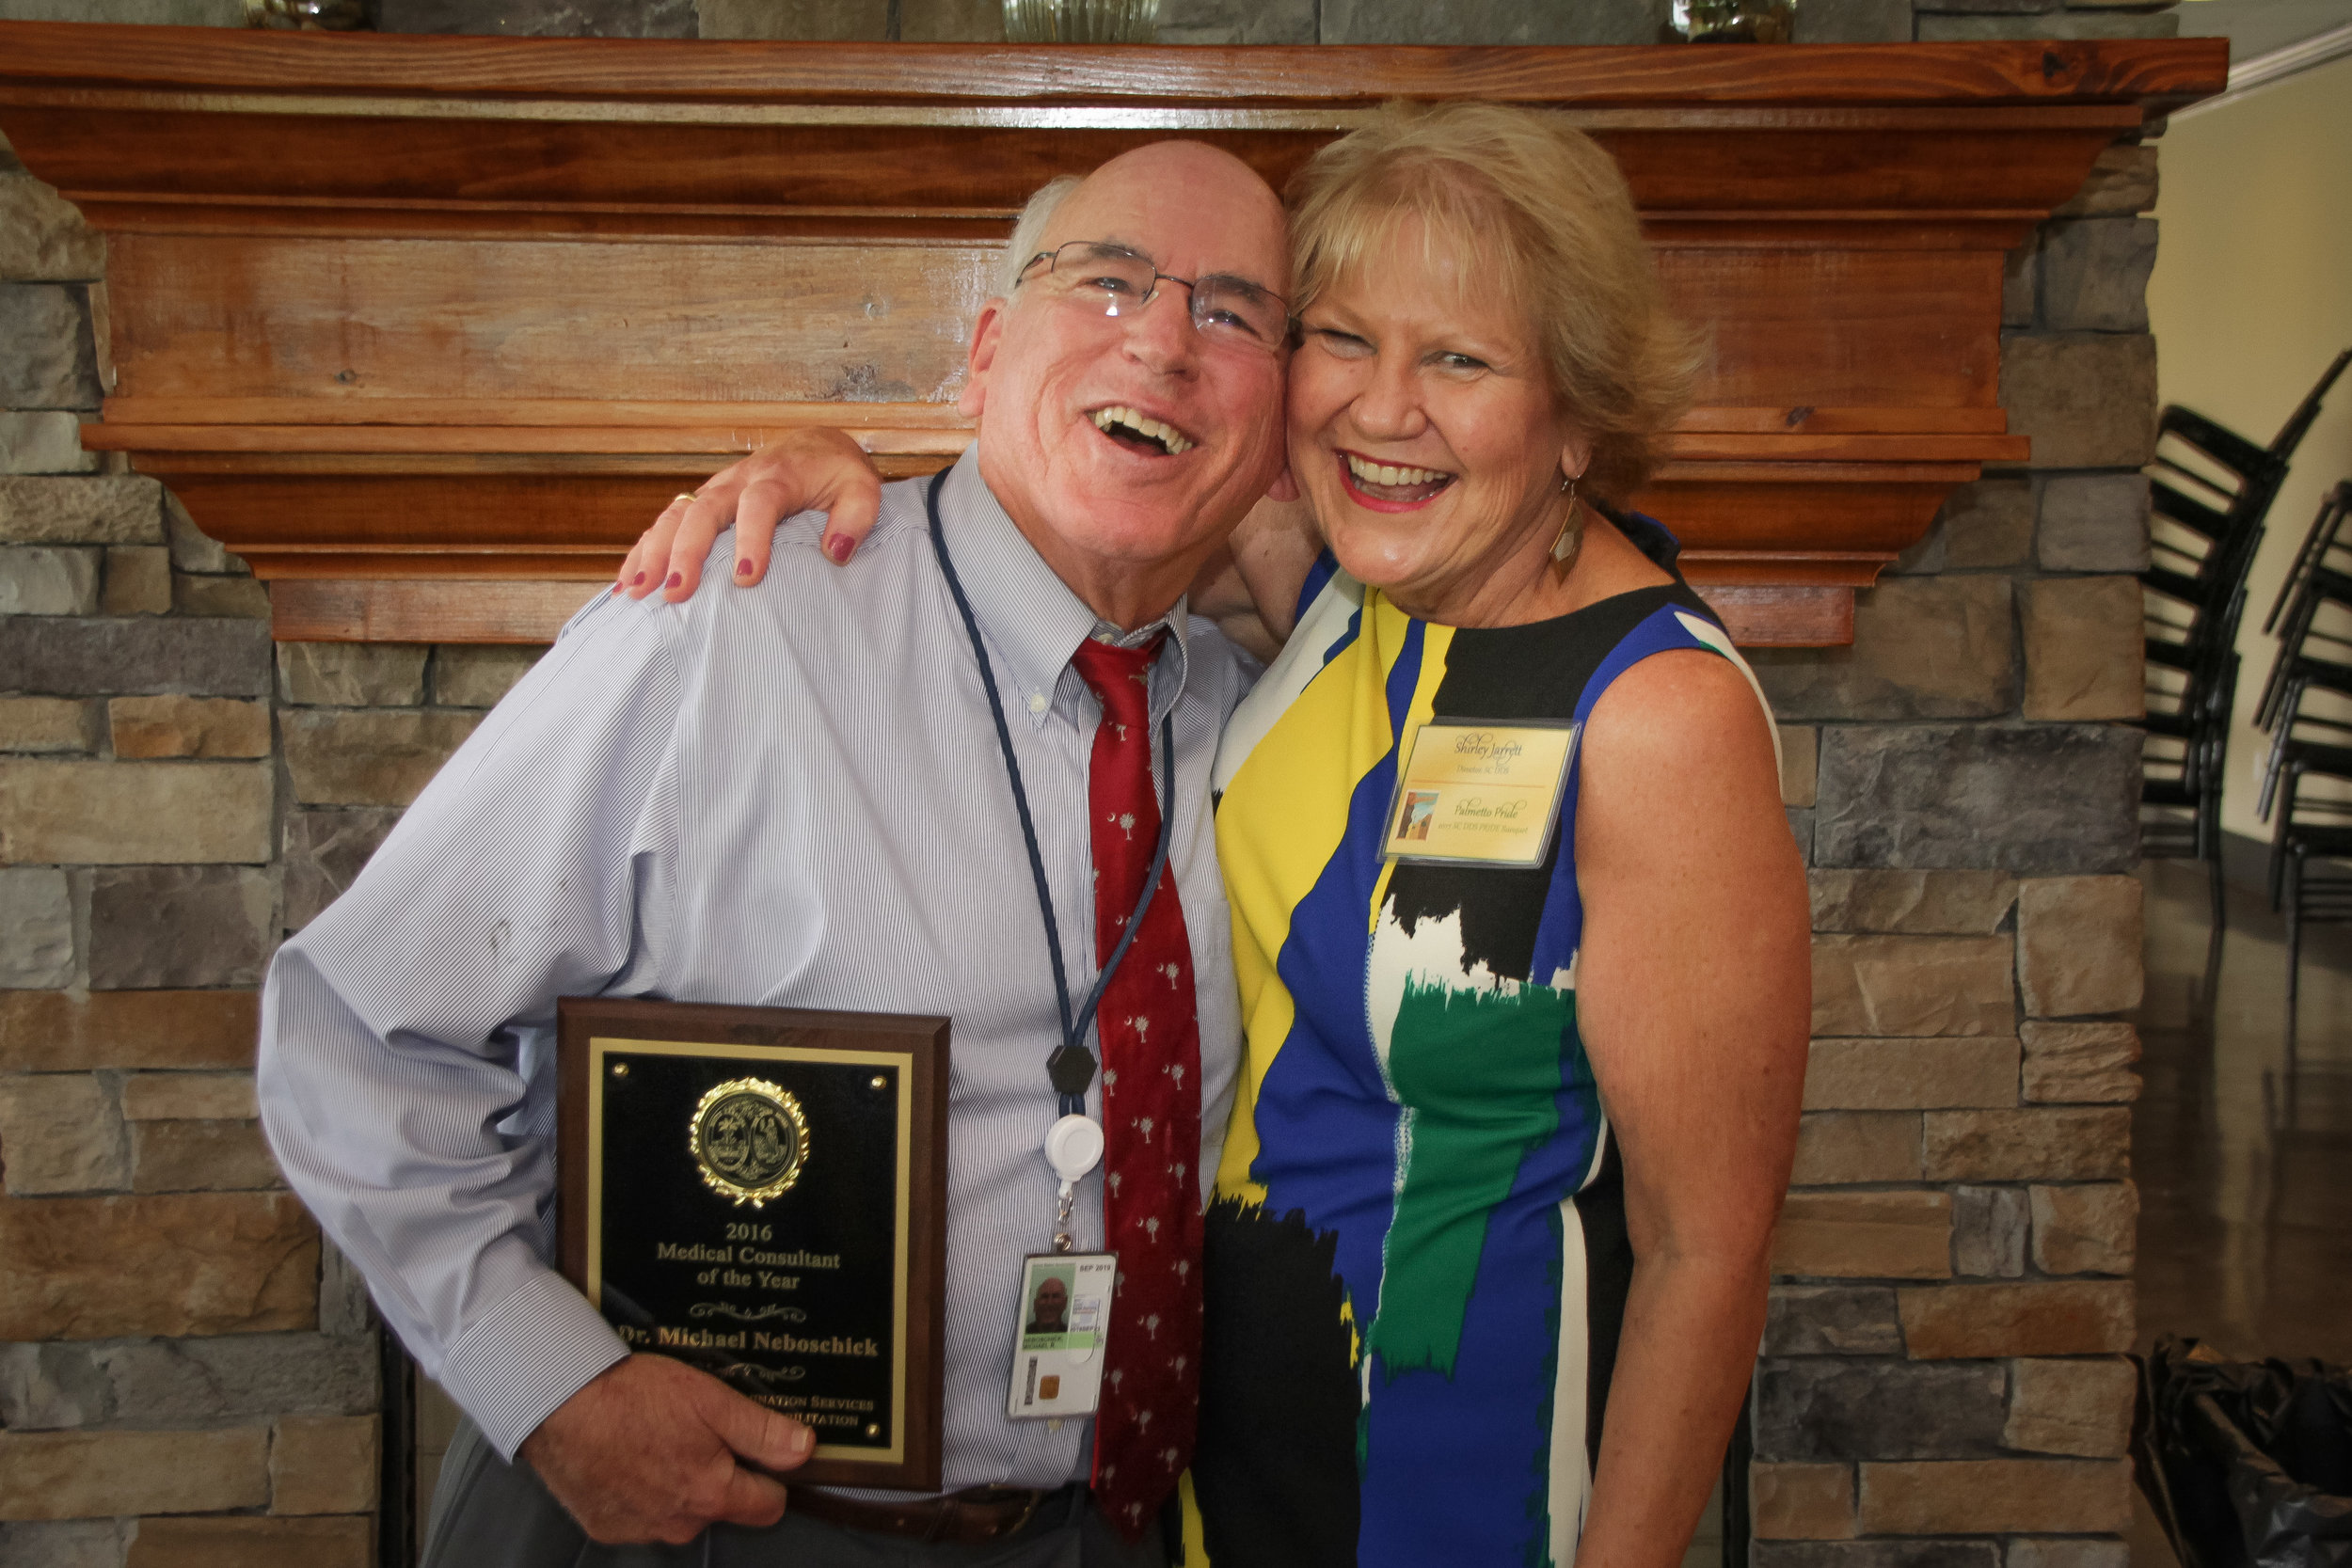 Medical Consultant of the Year  Dr. Michael Neboschick - Charleston DDS Shirley Jarrett, Disability Determination Services (DDS) Director